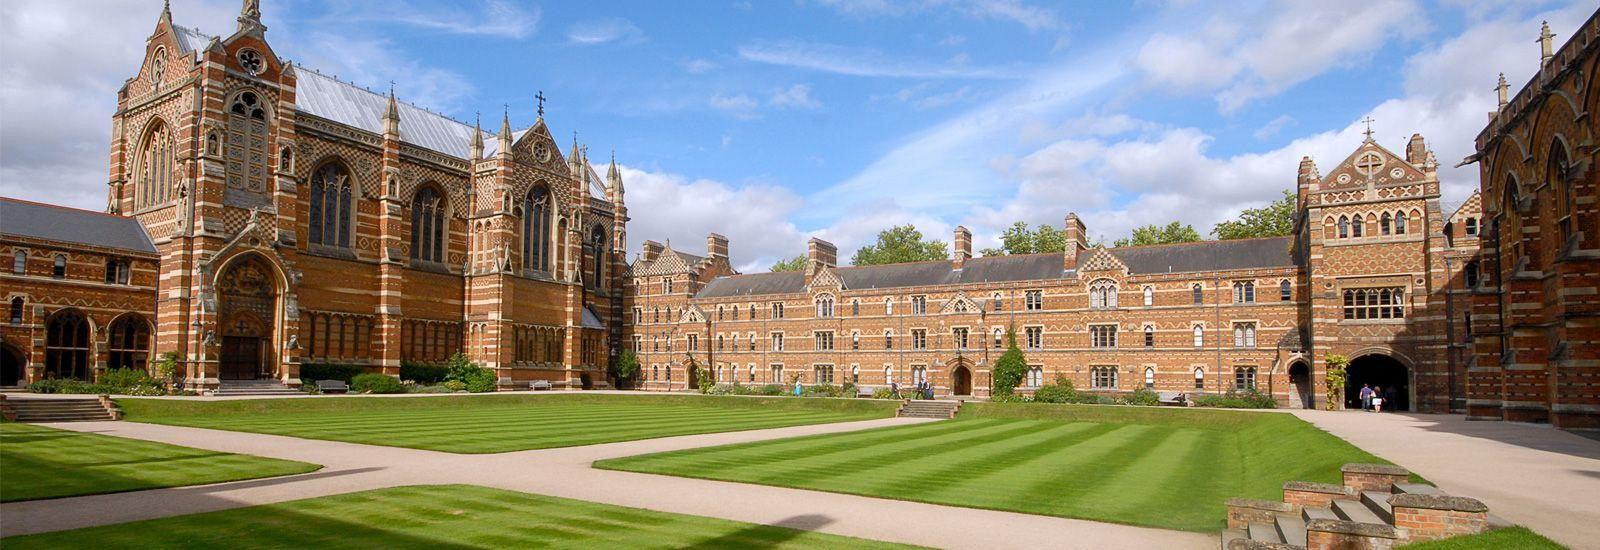 Keble College, Oxford - Sheet1